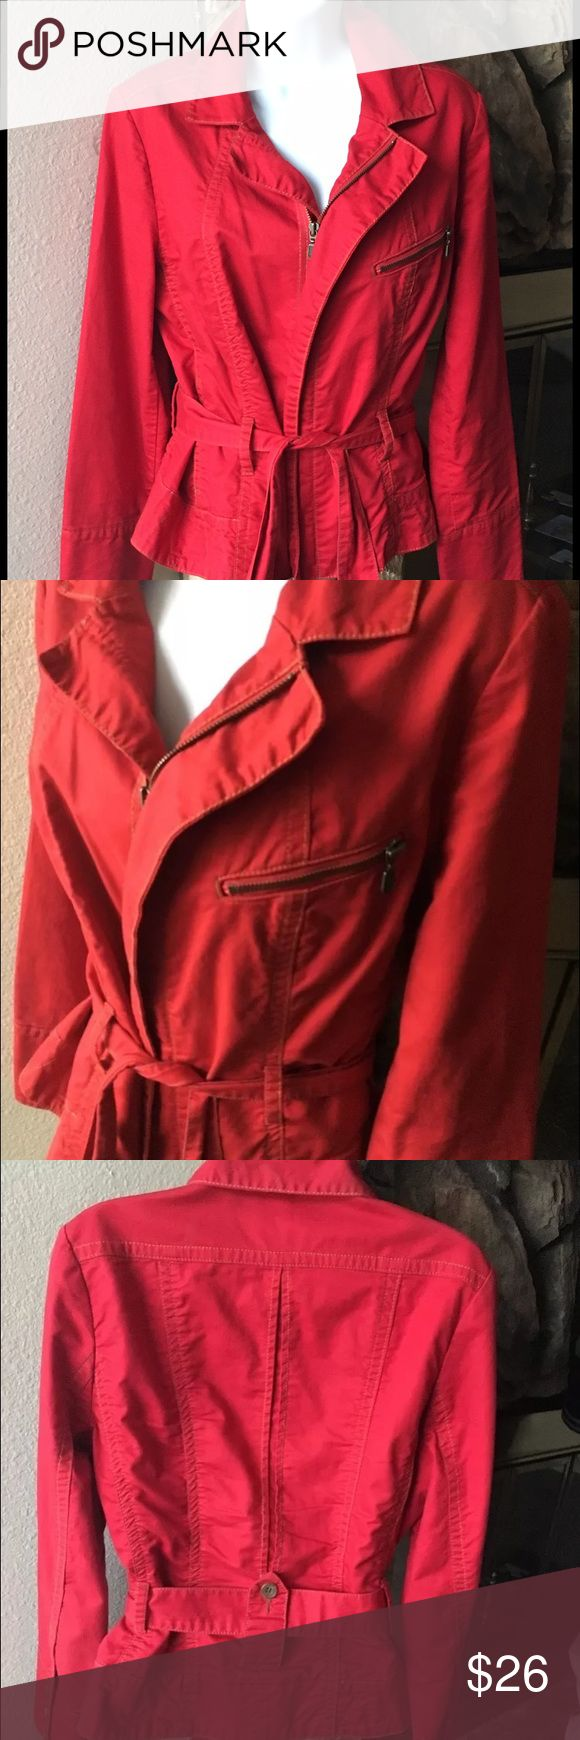 CAbi women's red zip-up jacket size large This listing is for a CAbi red zip up jacket in excellent used condition. Size Large fits more like a Medium/Large. Stain free and comes from a smoke free & pet free home. 100% Cotton. CAbi Jackets & Coats